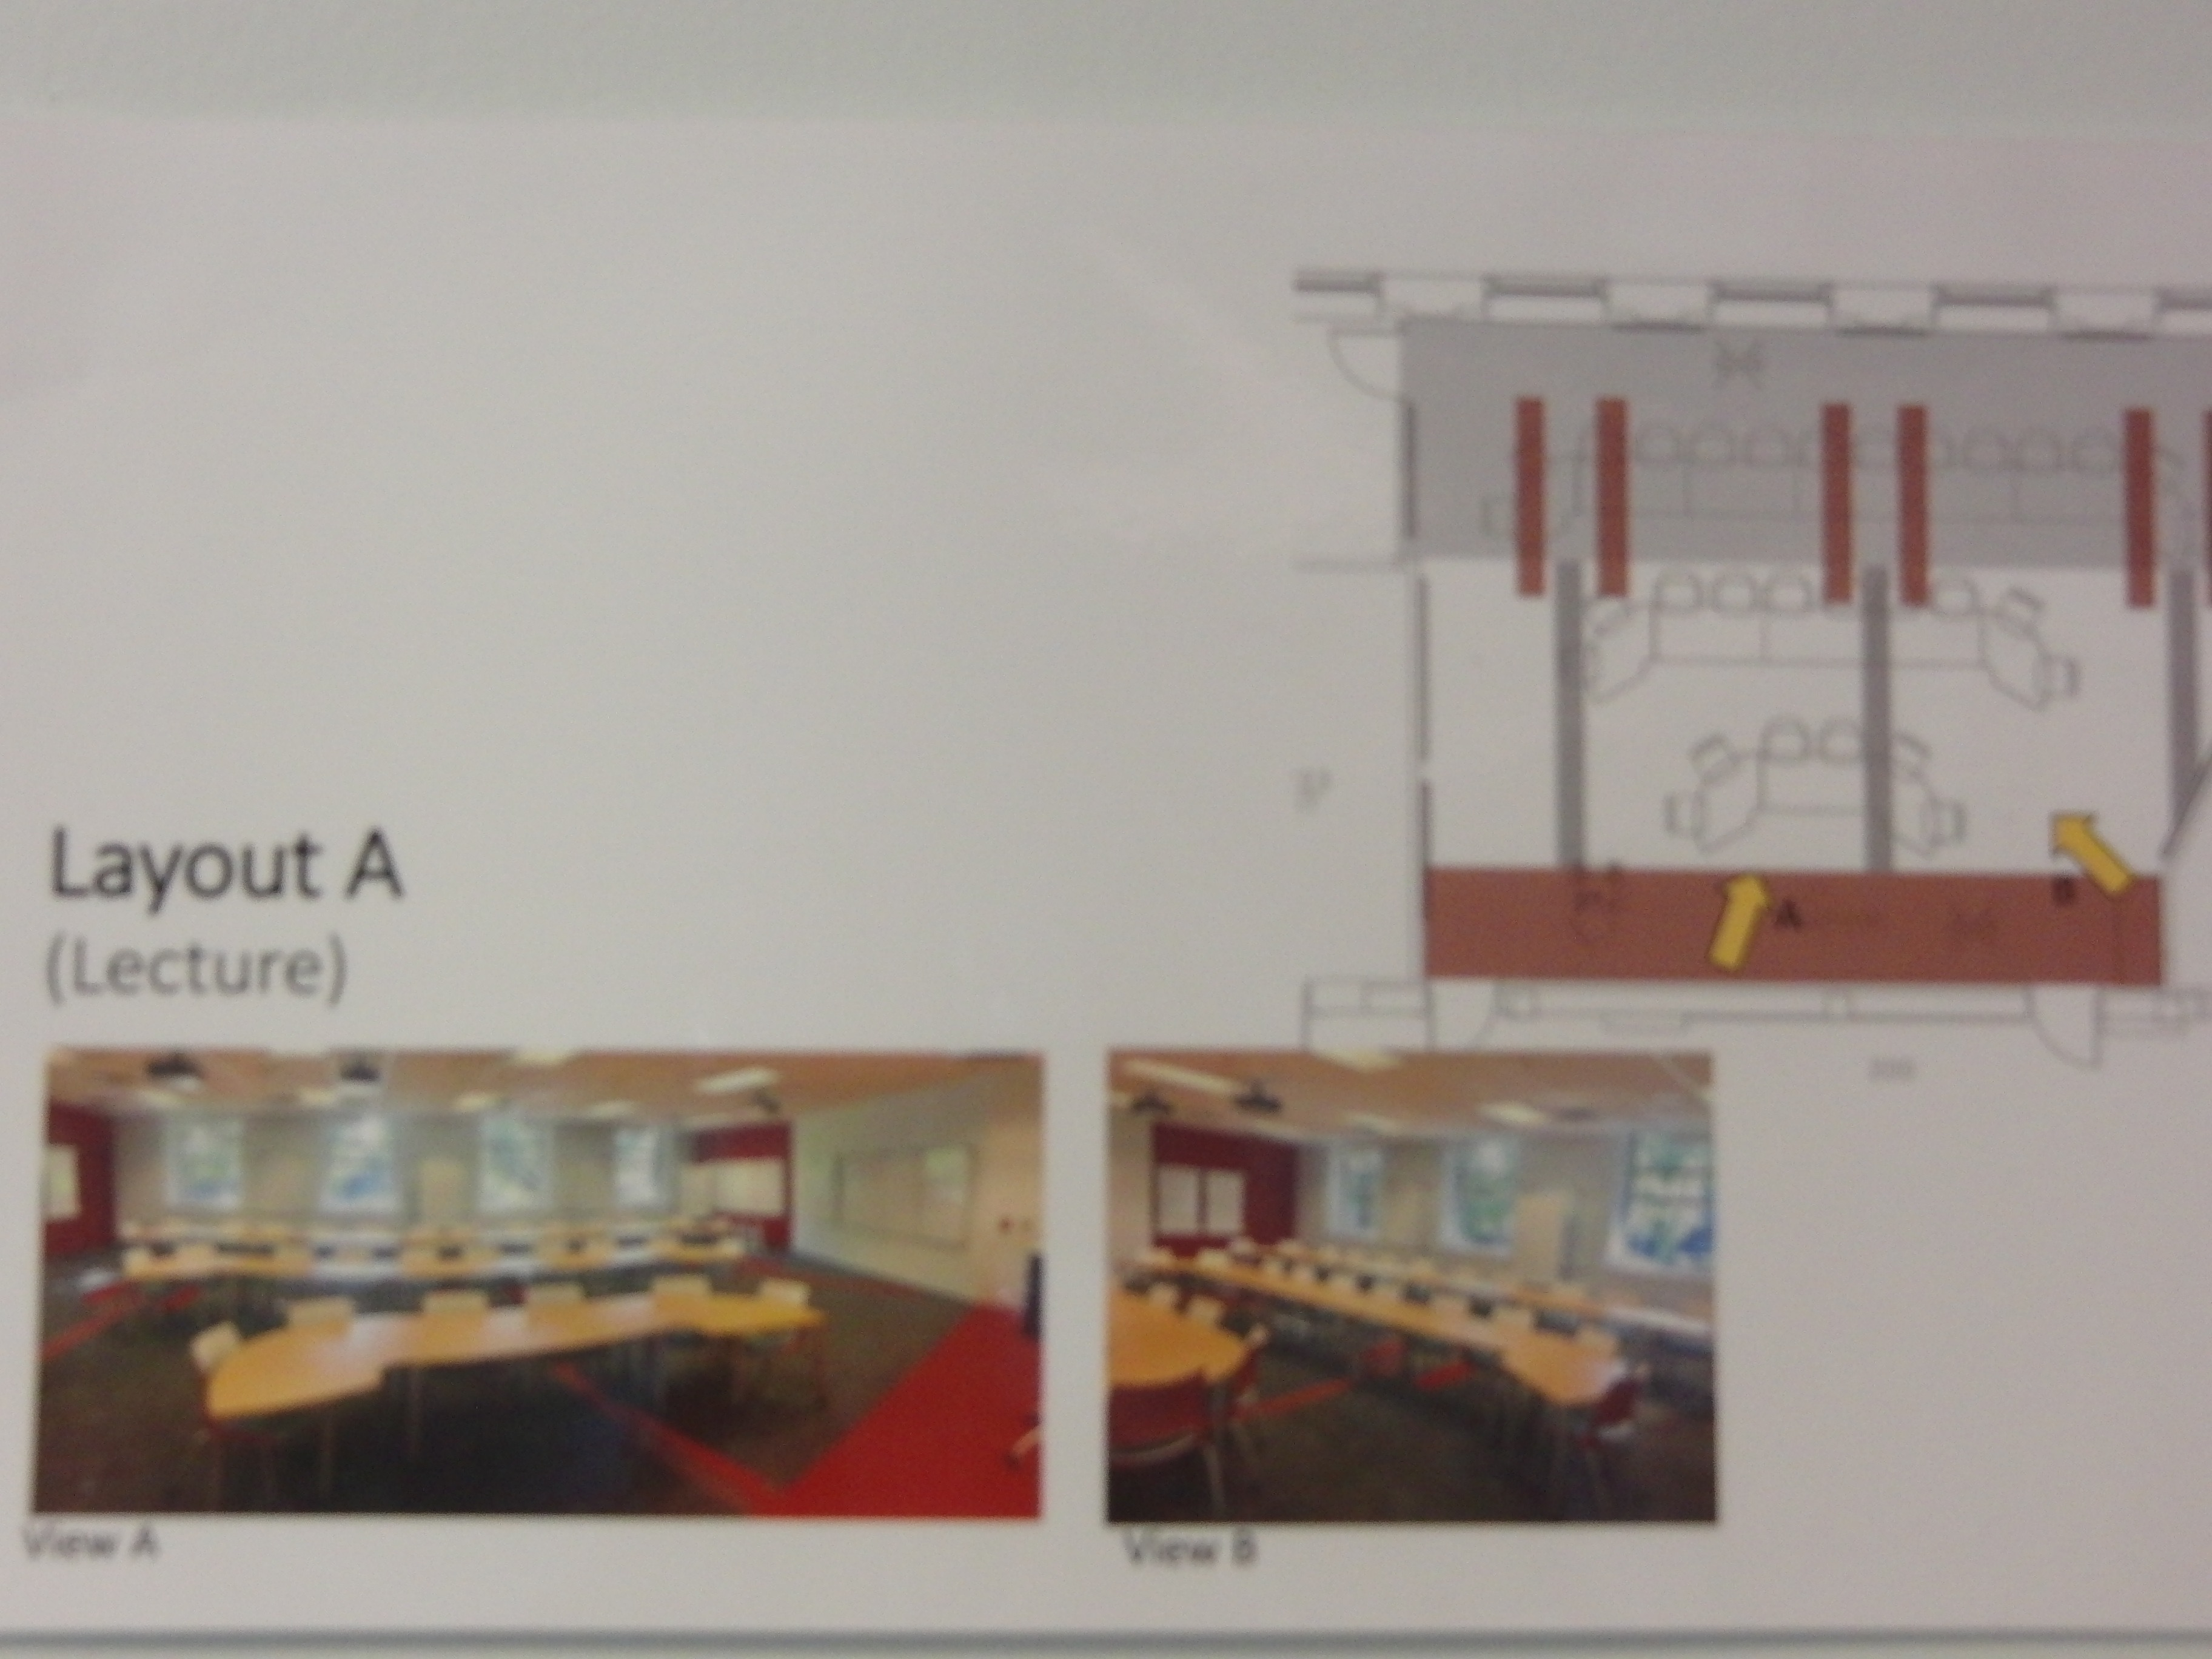 Photo of room configuration for lecture described as layout a